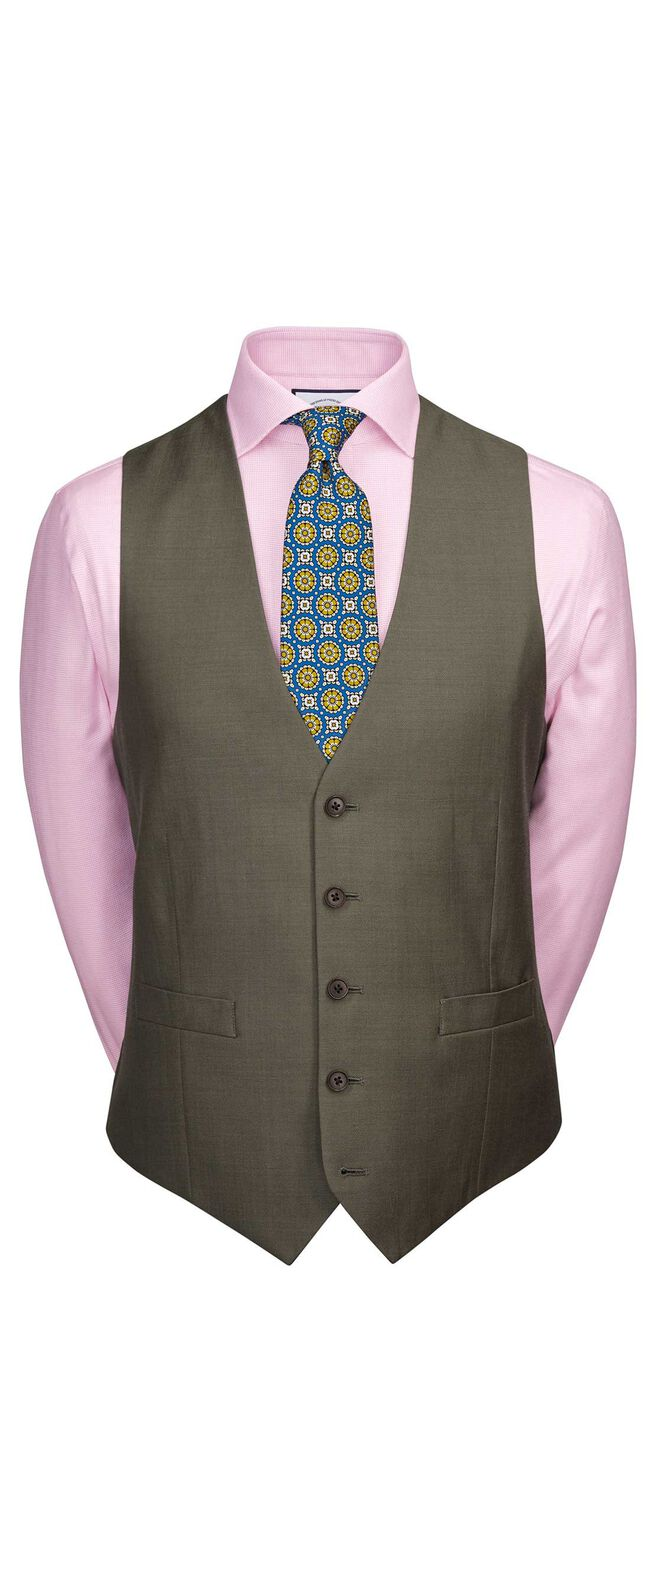 Olive classic fit twill business suit